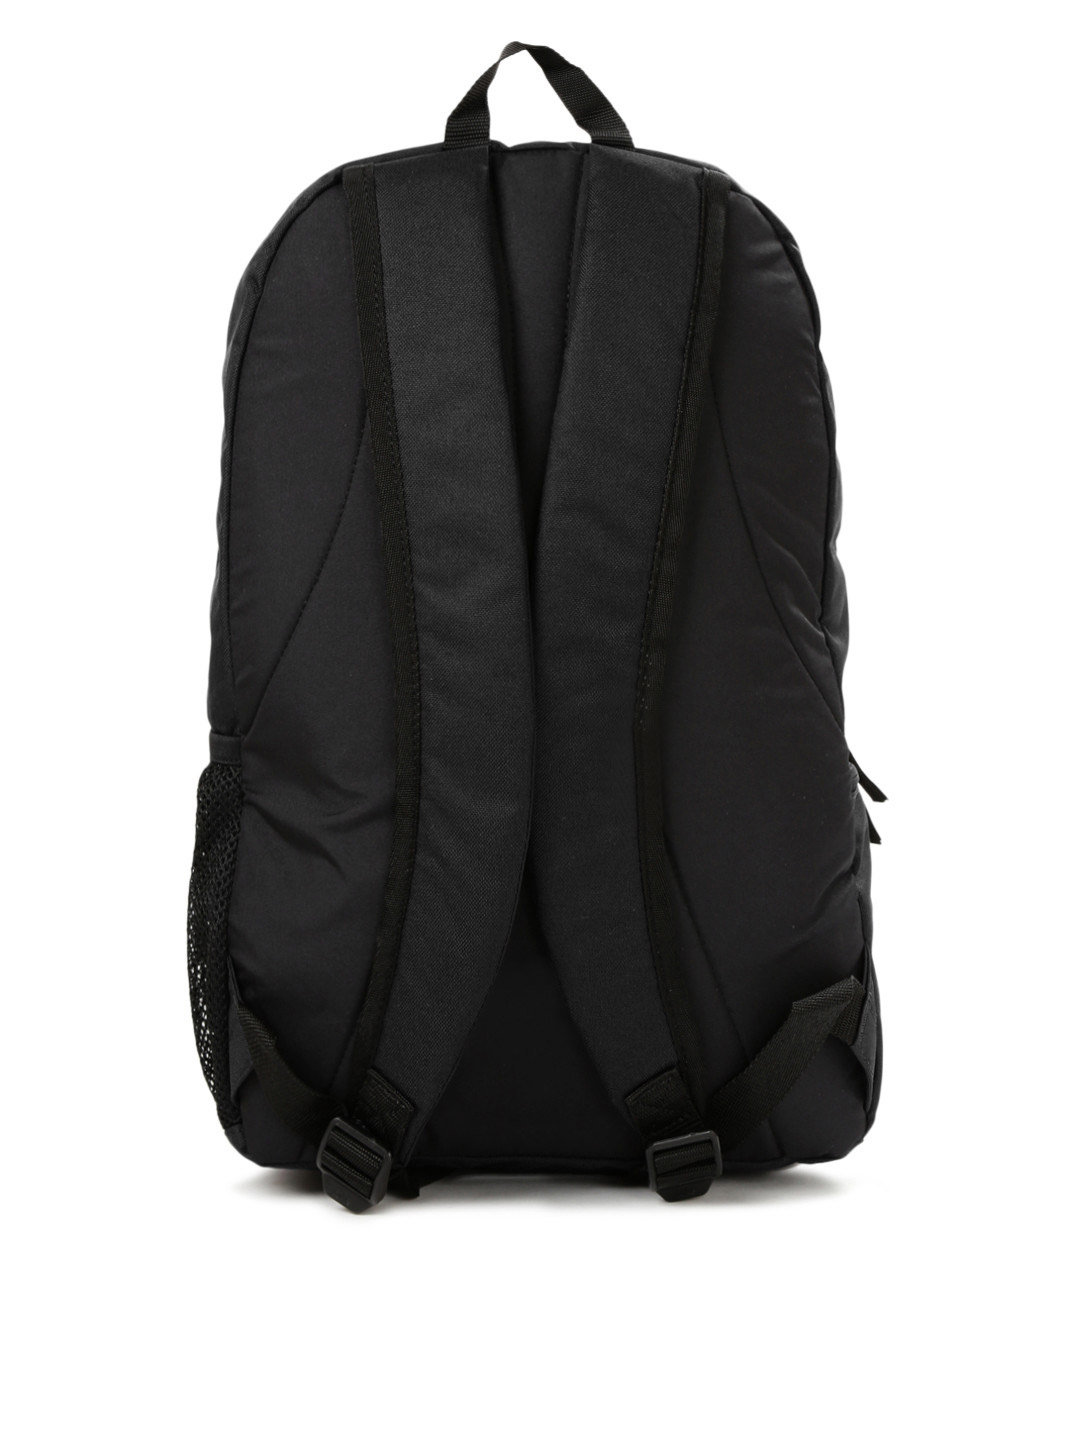 eac56bace4 Laptop Bags